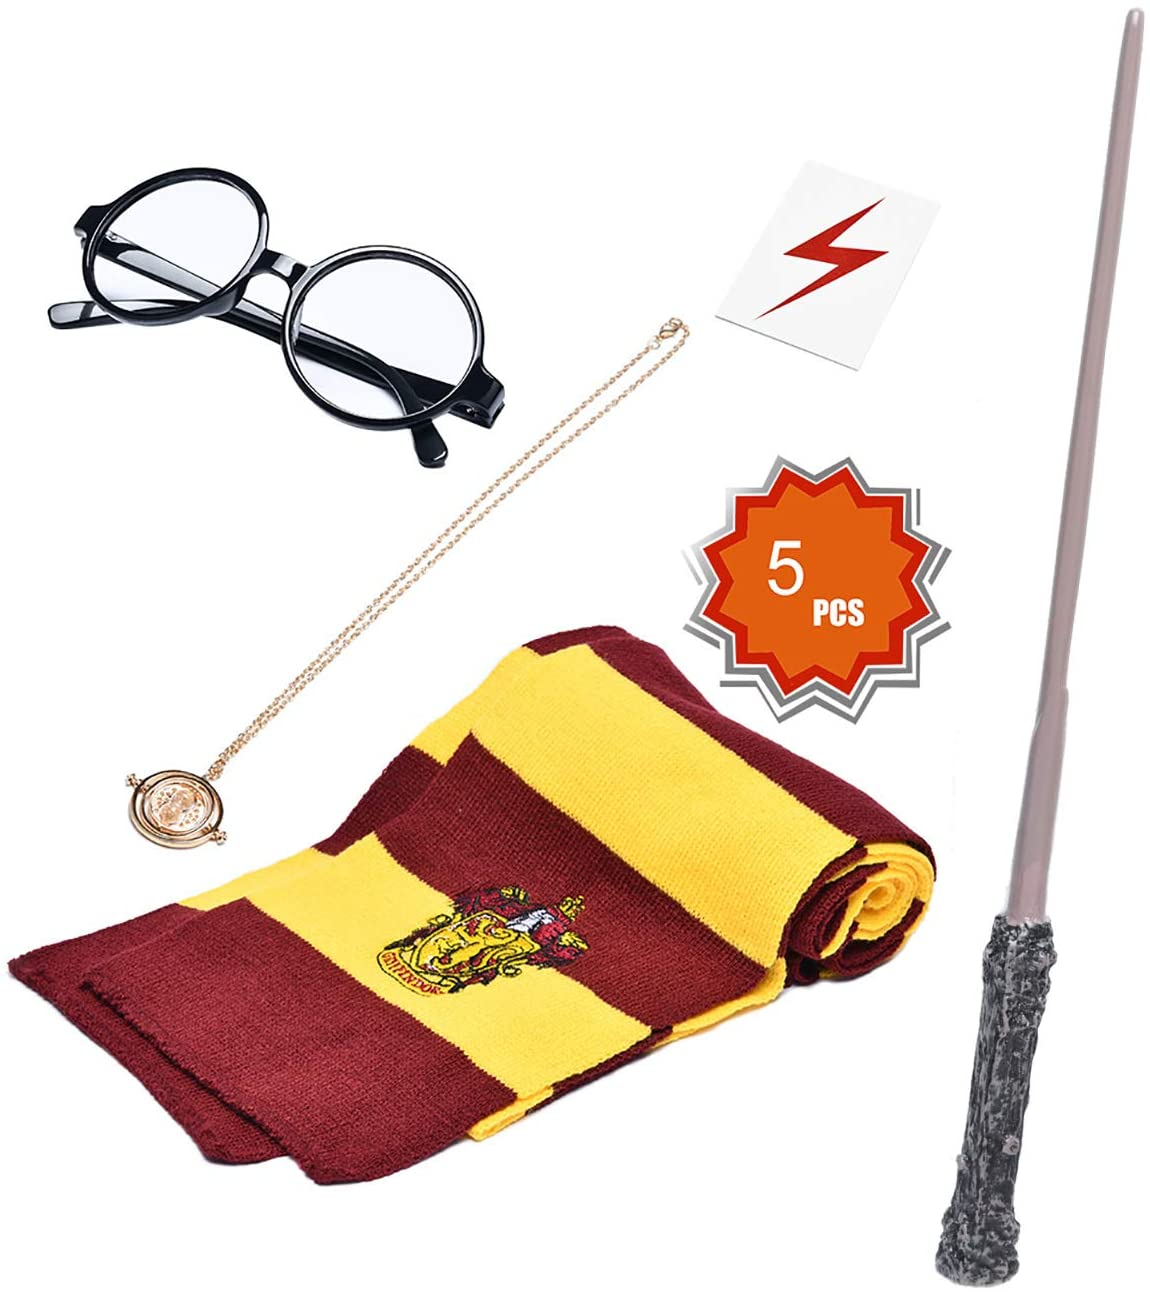 KESOCORAY Cosplay Costume Props Accessories Gifts for Harry Birthday Party Magic Wand Eyeglass Frame Knit Scarf Necklace Set-A Plus